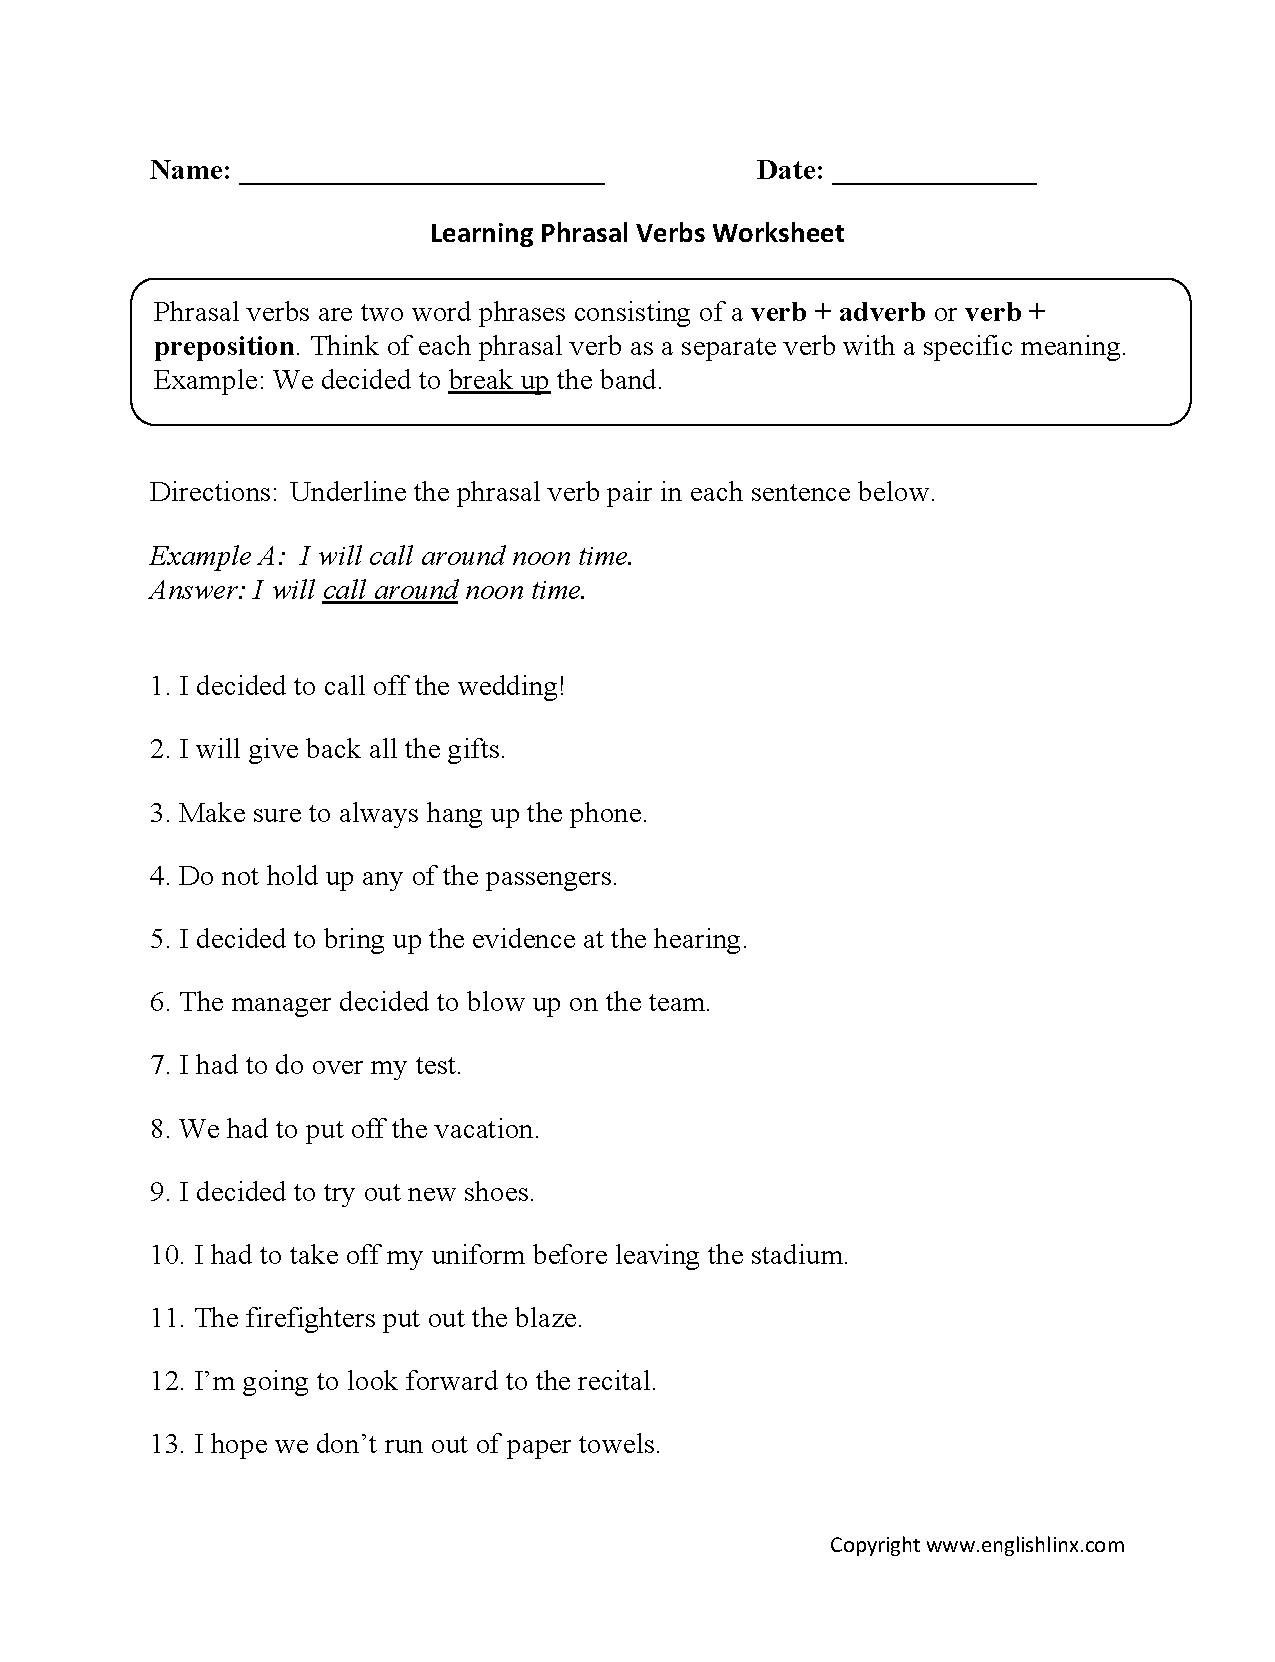 Phrasal Verbs Worksheets   Verb worksheets [ 1662 x 1275 Pixel ]